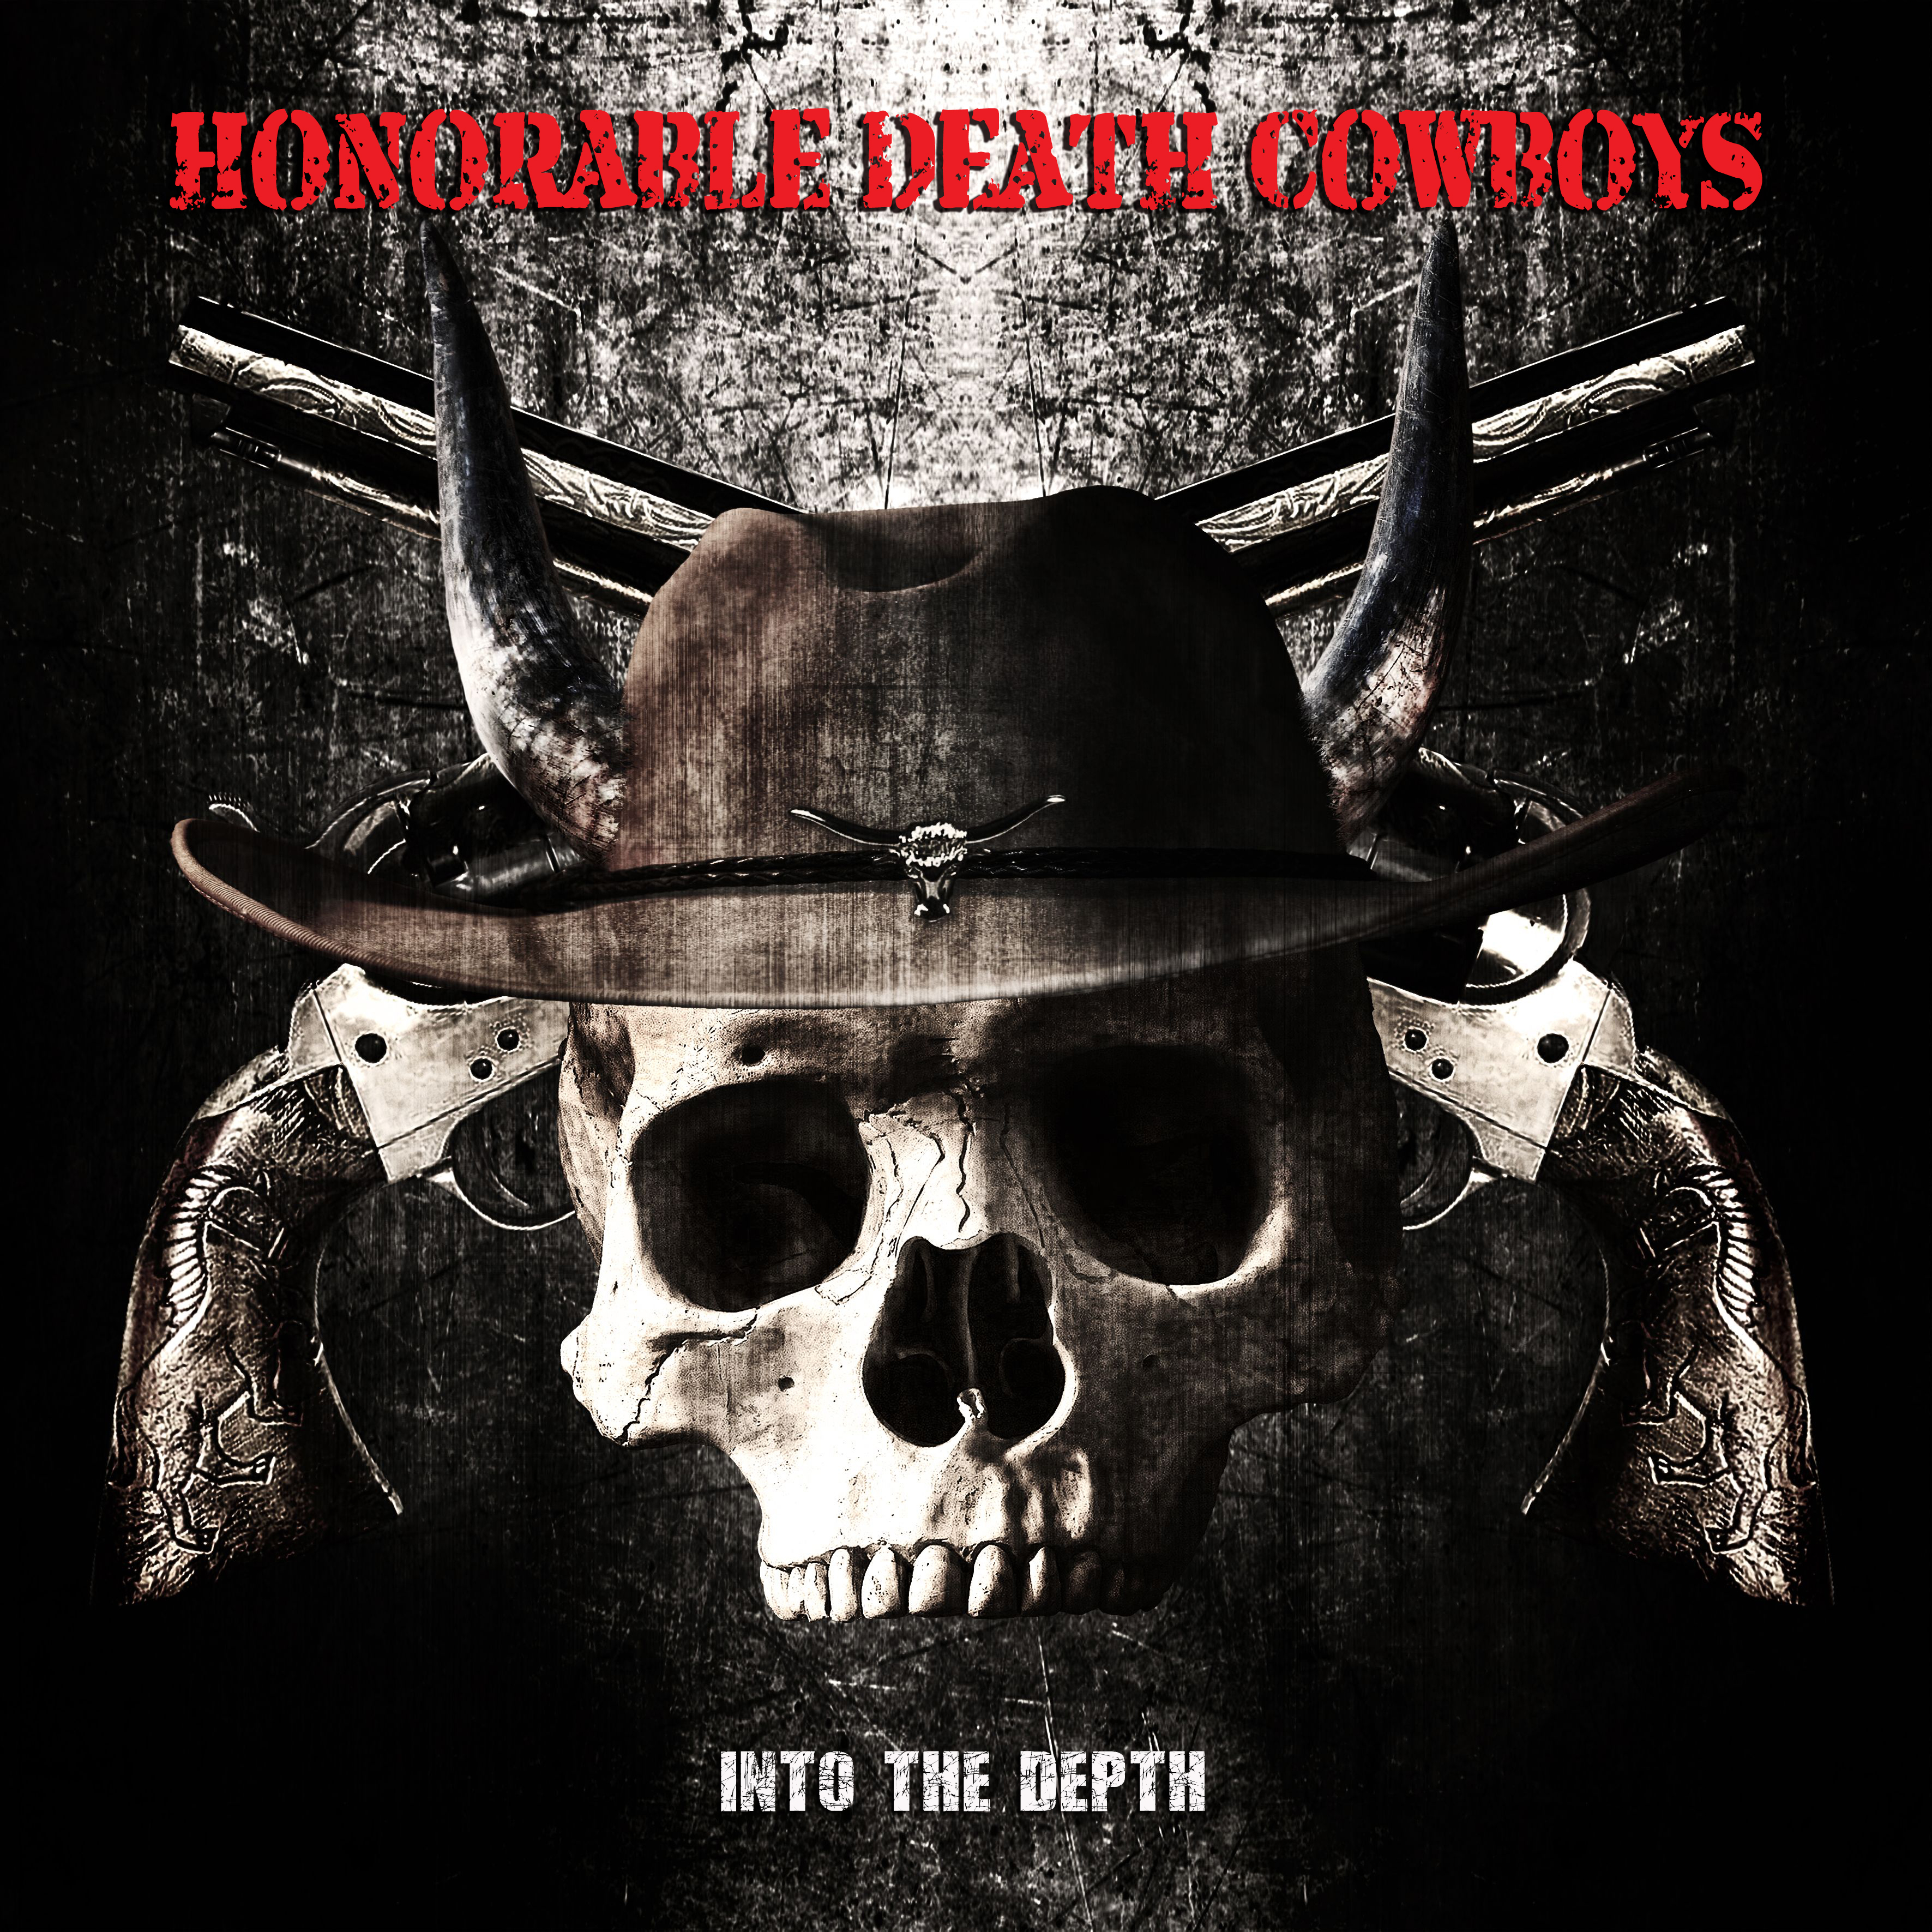 HONORABLE DEATH COWBOYS - Into the depth (single)